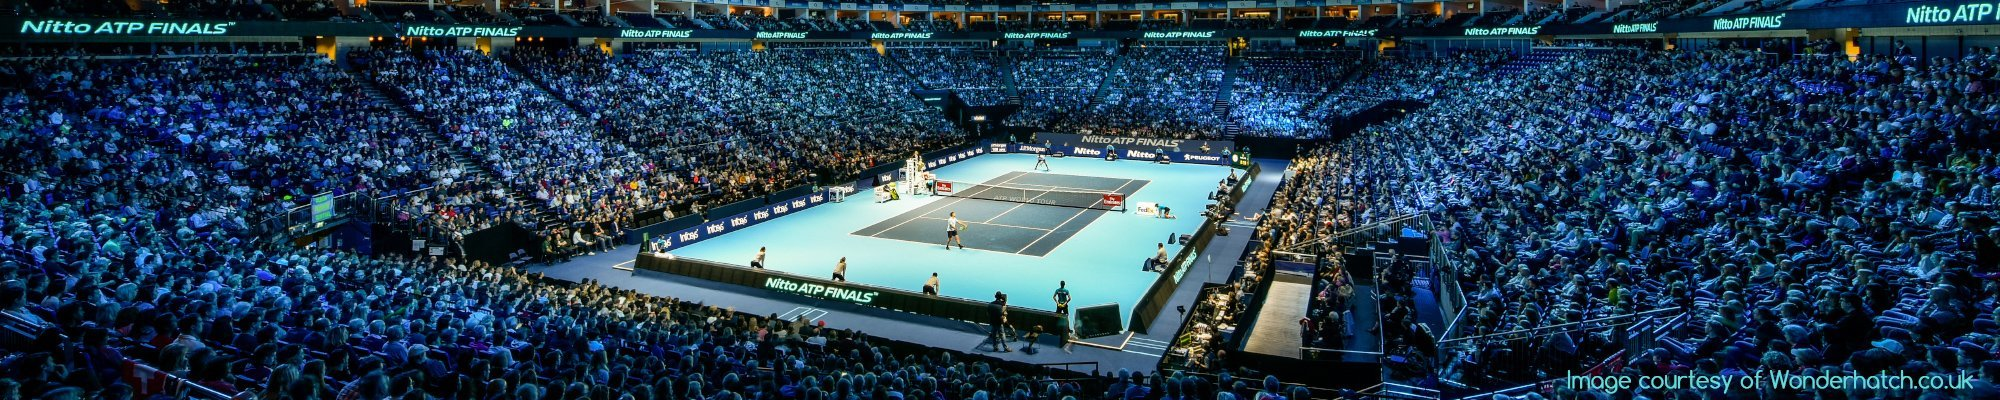 2018 Nitto ATP Finals NOV 12th